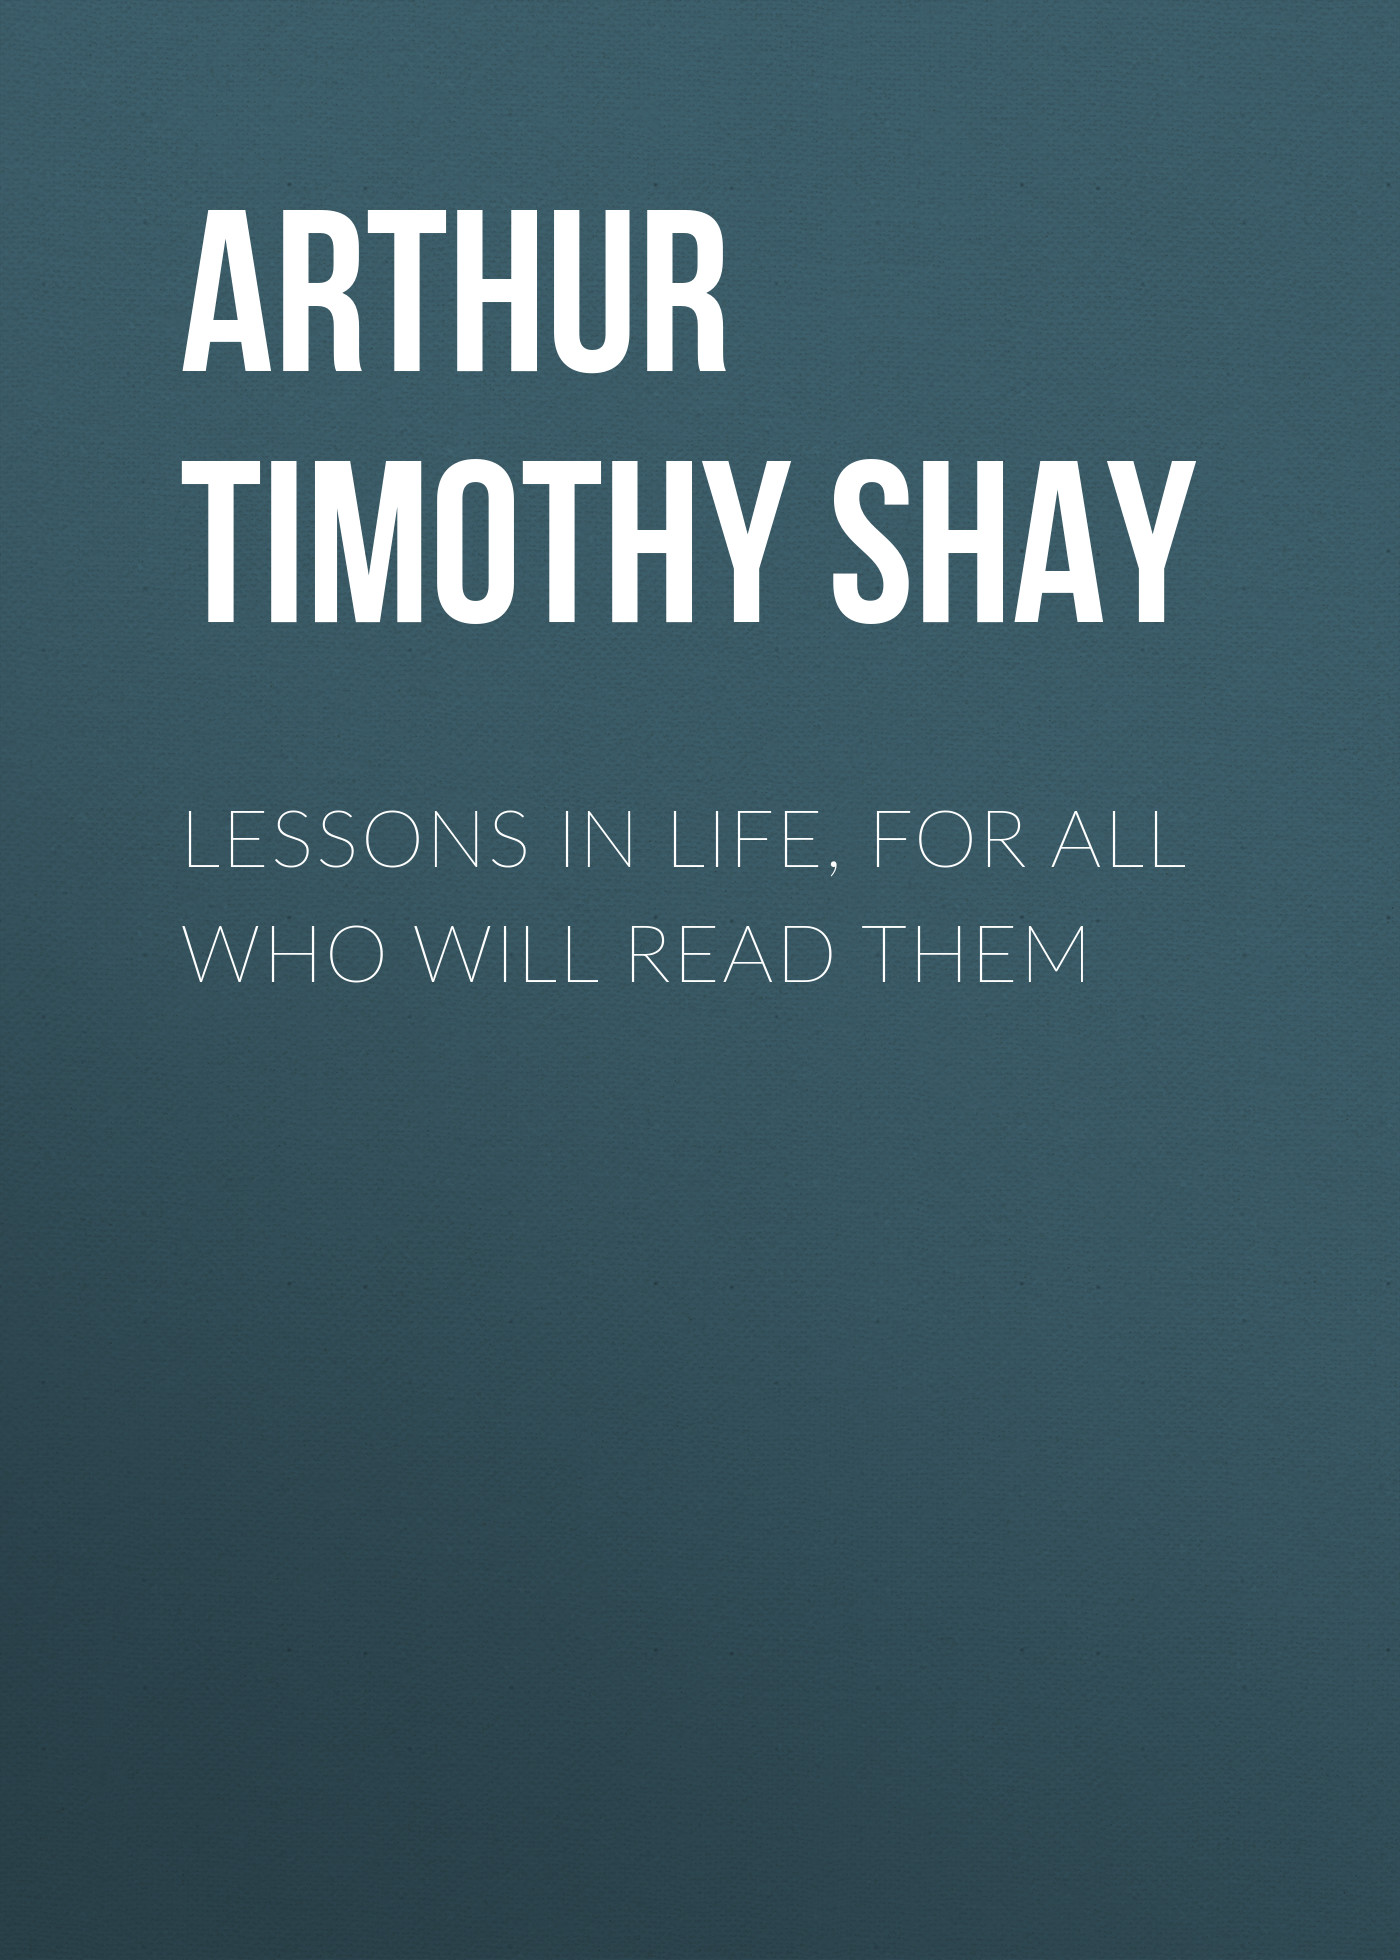 купить Arthur Timothy Shay Lessons in Life, for All Who Will Read Them